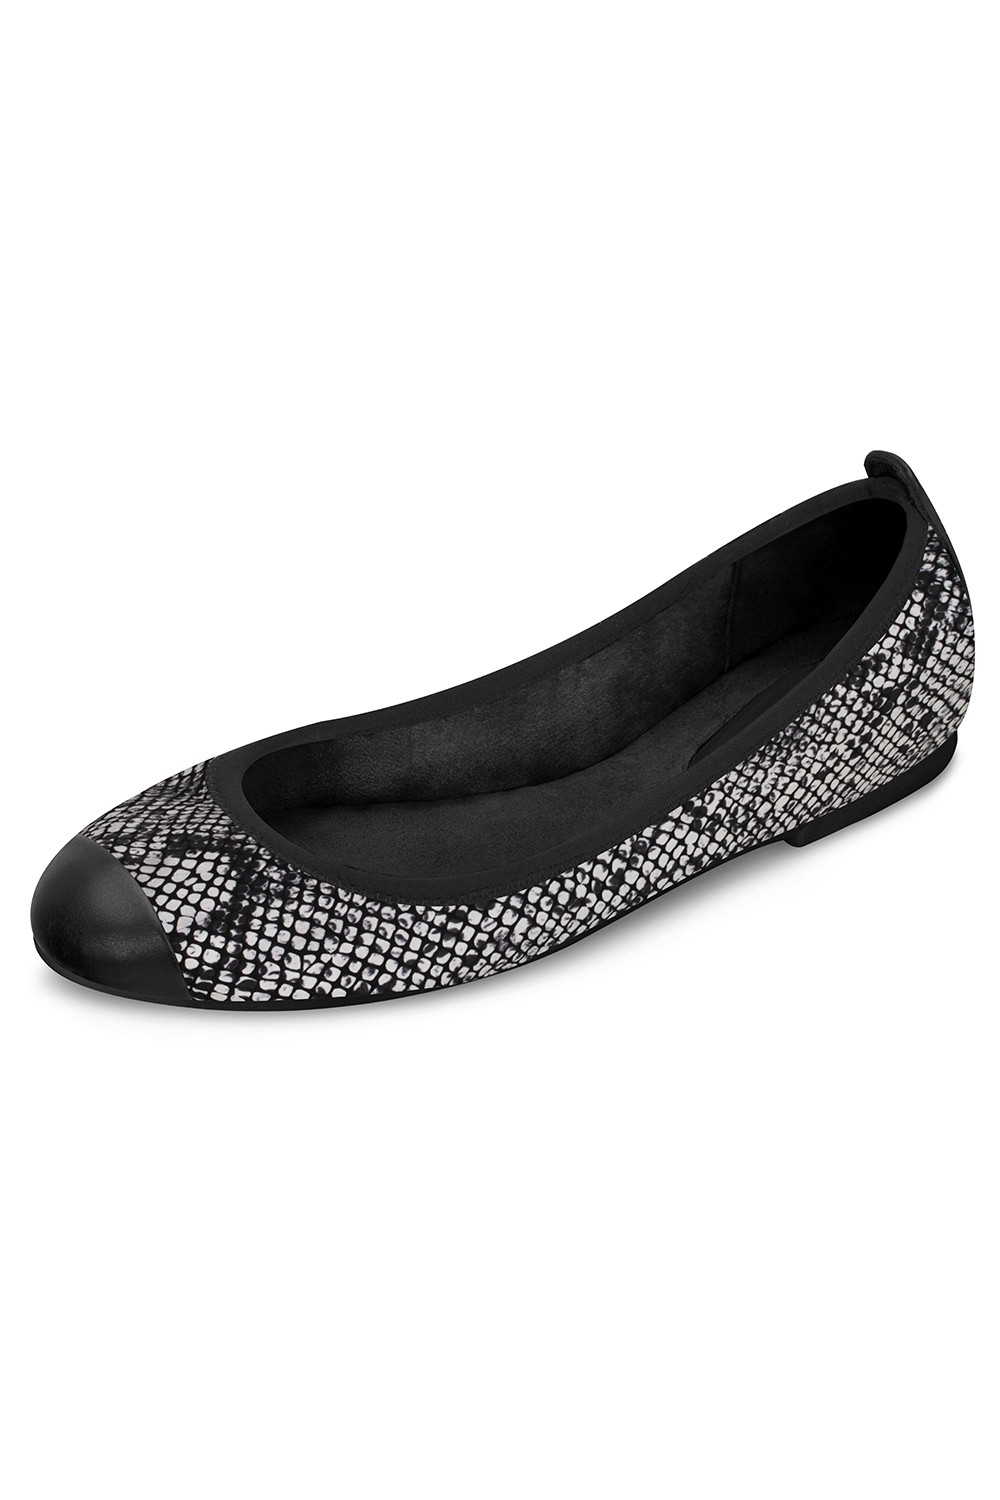 Python Ladies Ballet Flat Womens Fashion Shoes